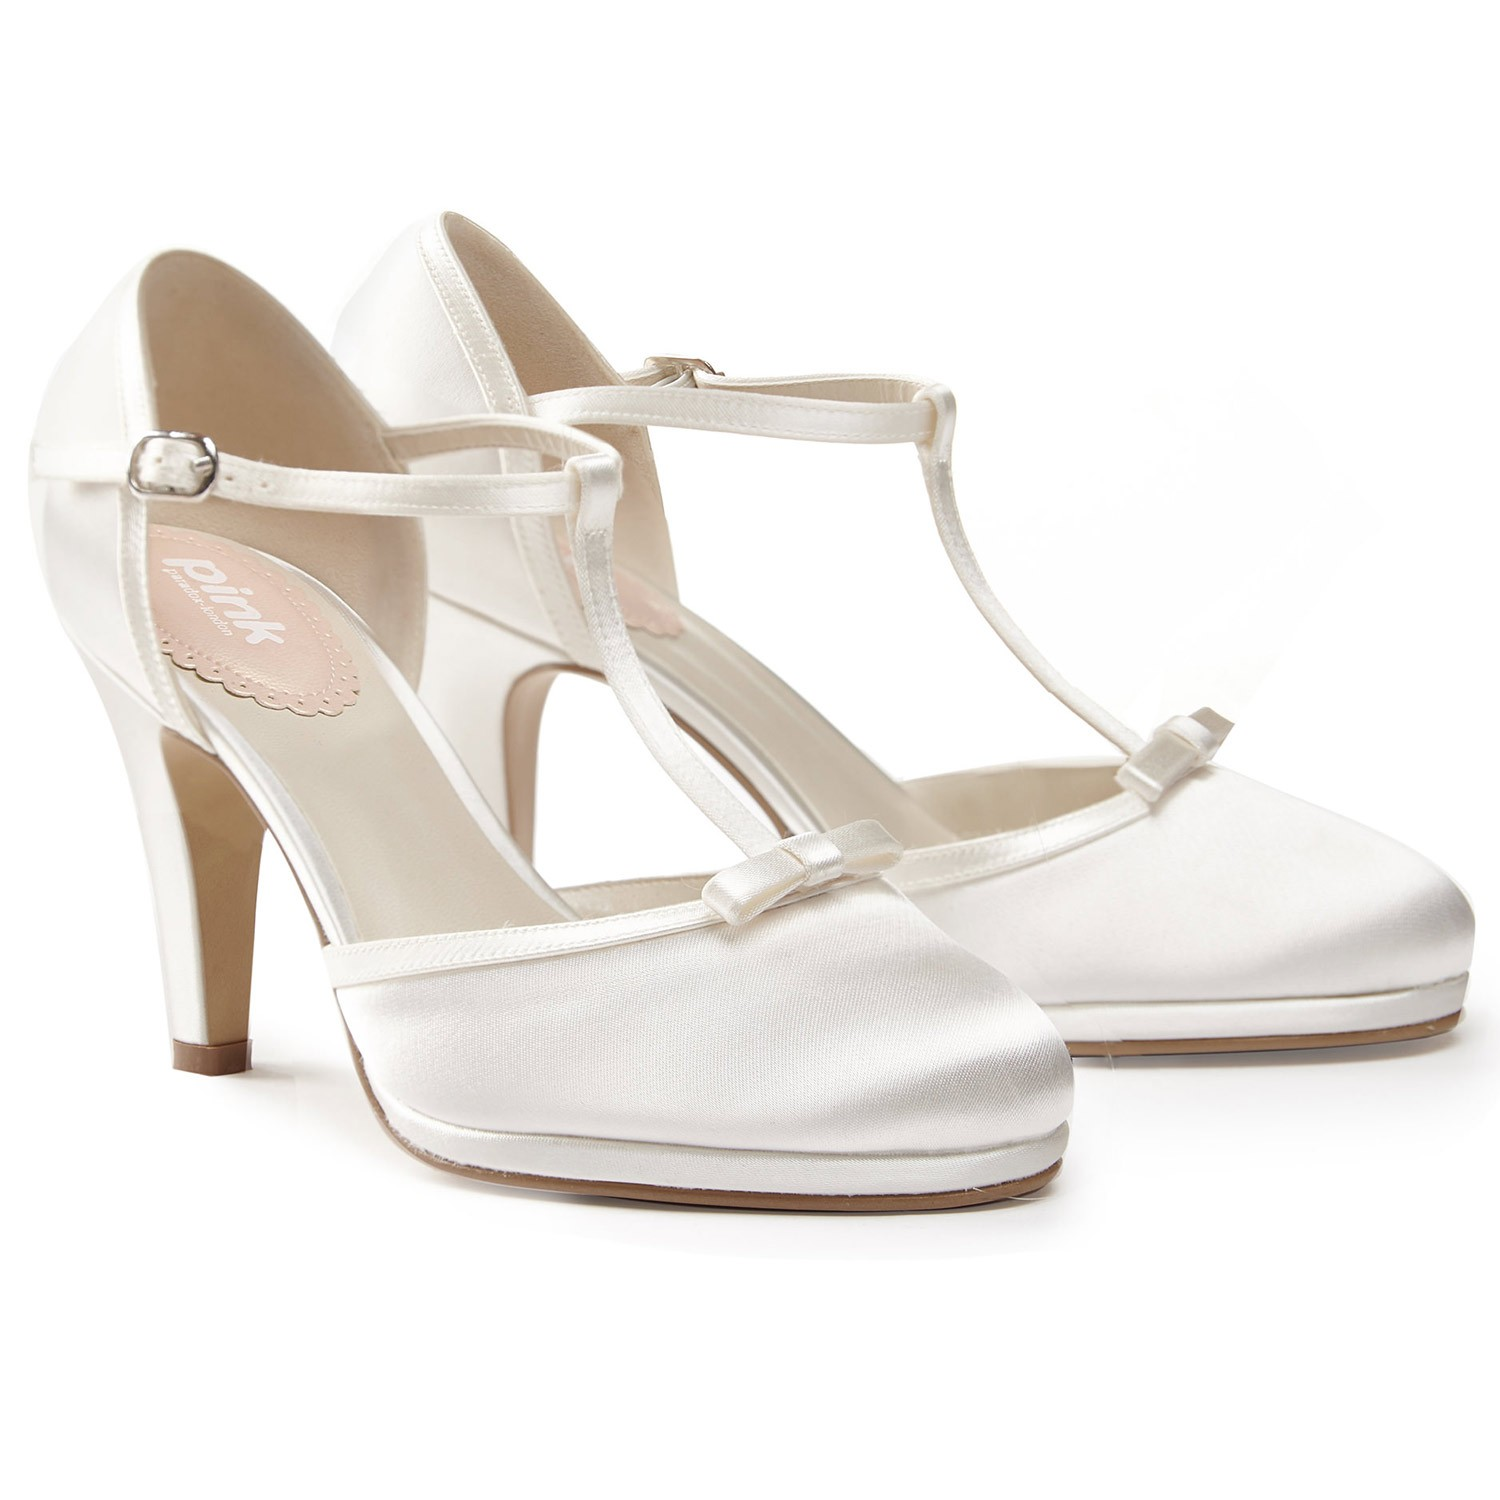 Chaussures Mariage Besson Chaussures Femme De Besson De Femme Mariage De Chaussures NO0Pynvwm8